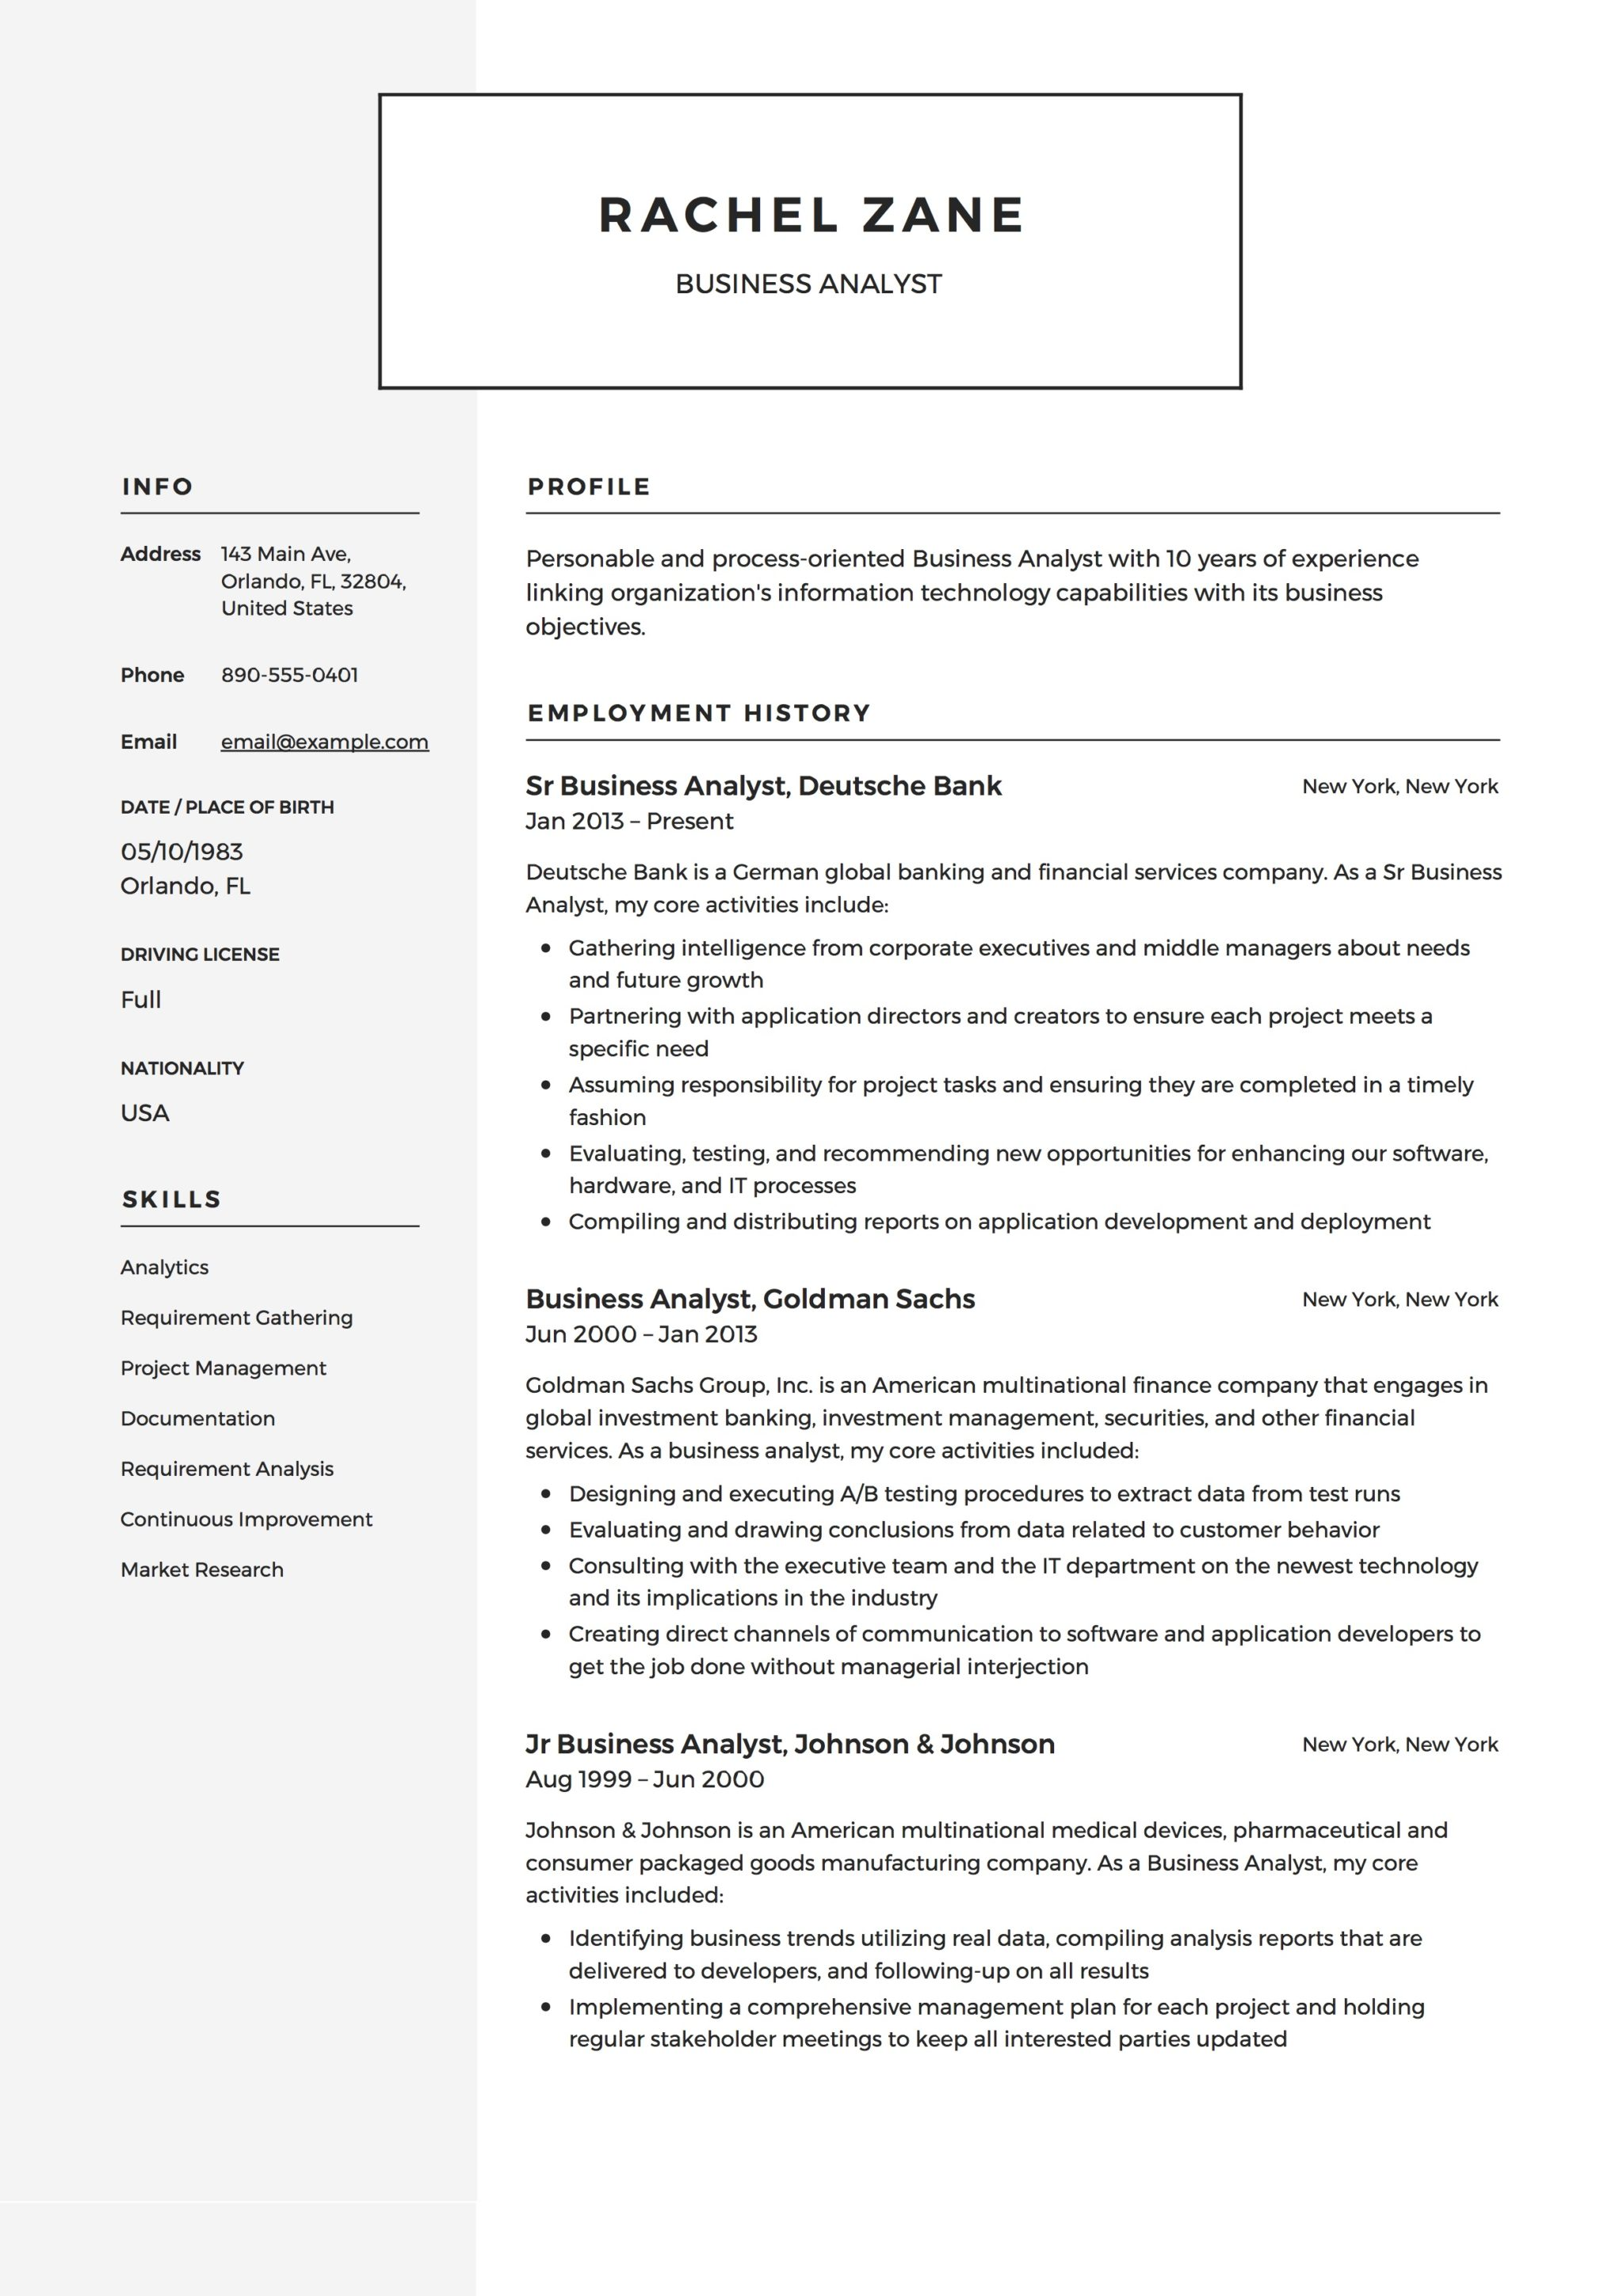 12 Business Analyst Resume Samples 2018 Free Downloads